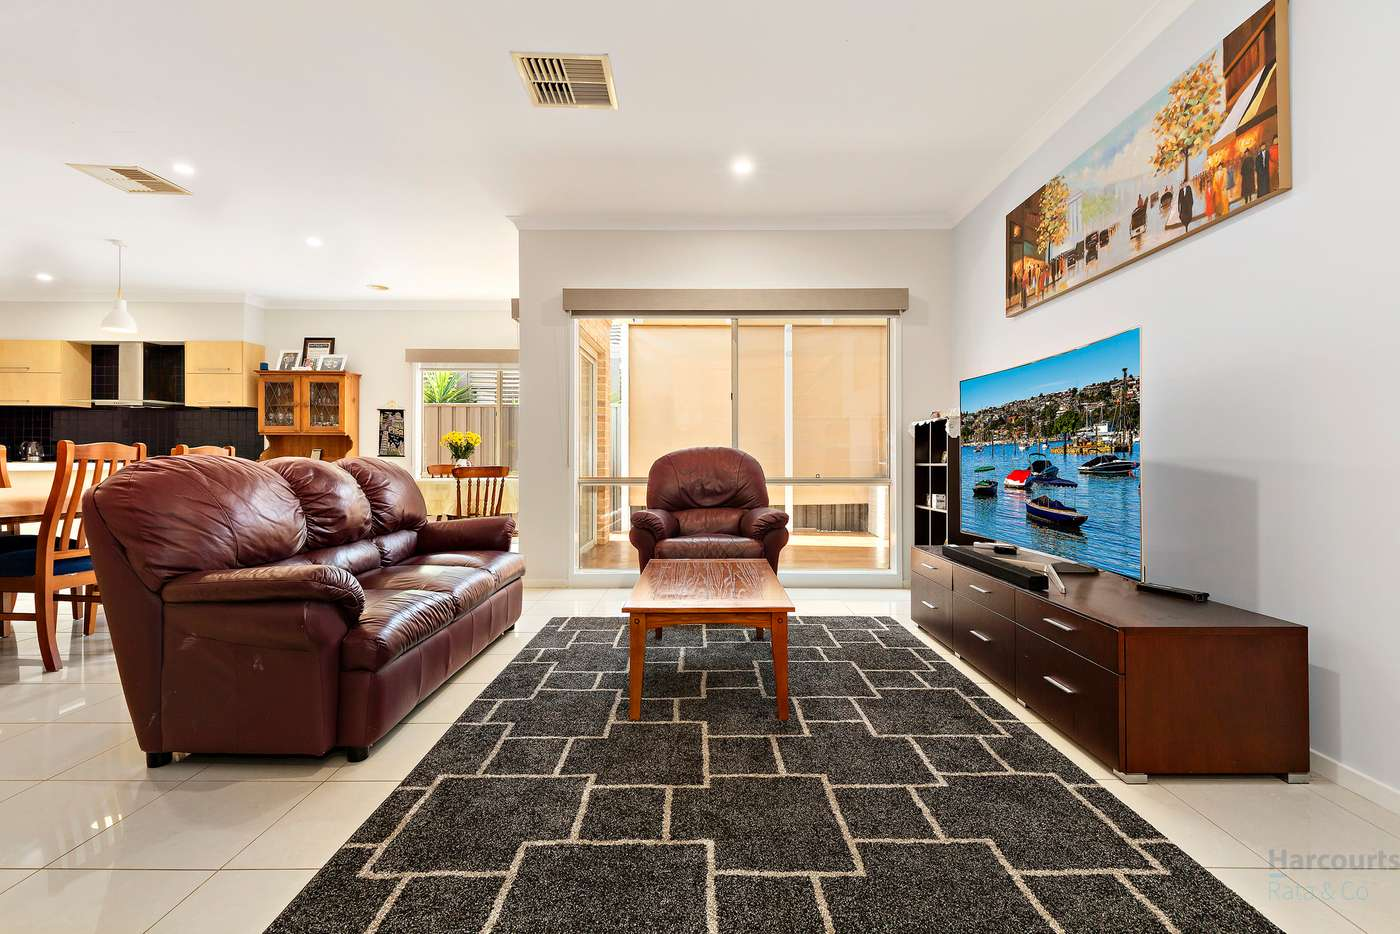 Fifth view of Homely house listing, 17 Rowell Drive, Mernda VIC 3754